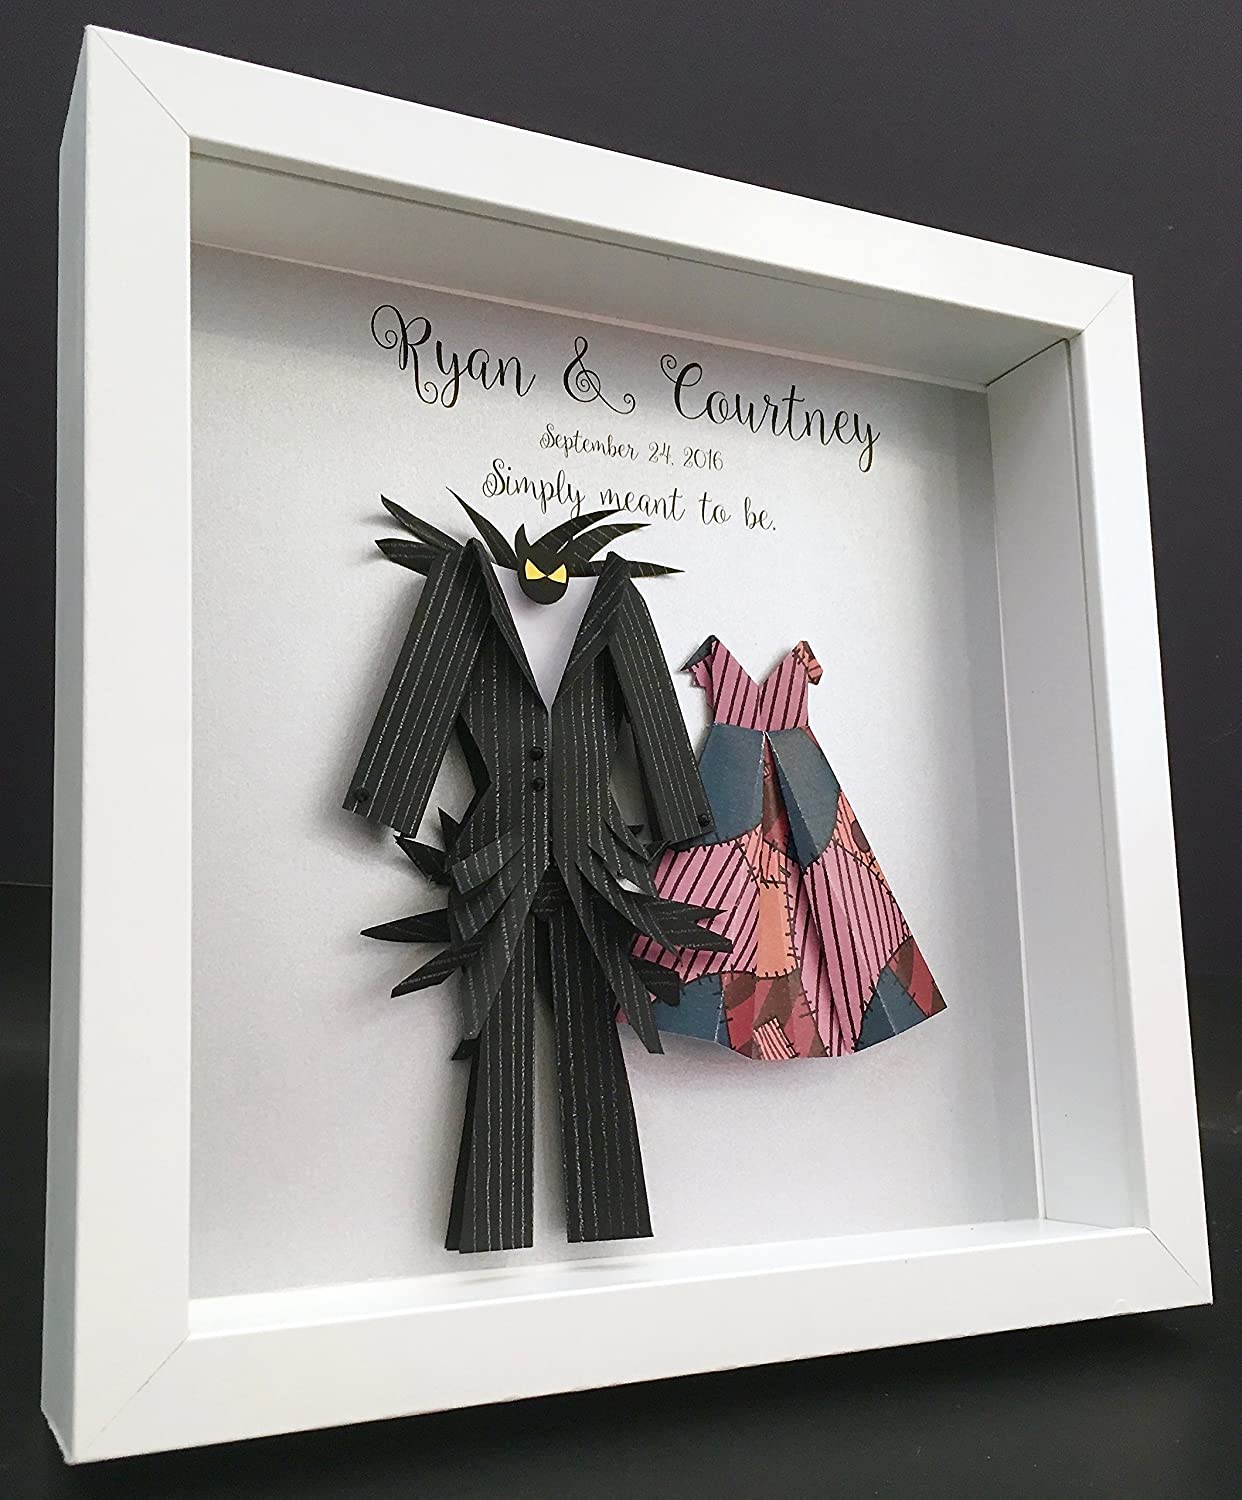 Personalized Wedding Anniversary Gift, Nightmare Before Christmas, Jack and Sally Paper Origami Bride & Groom Shadowbox Frame Wall Art Gift